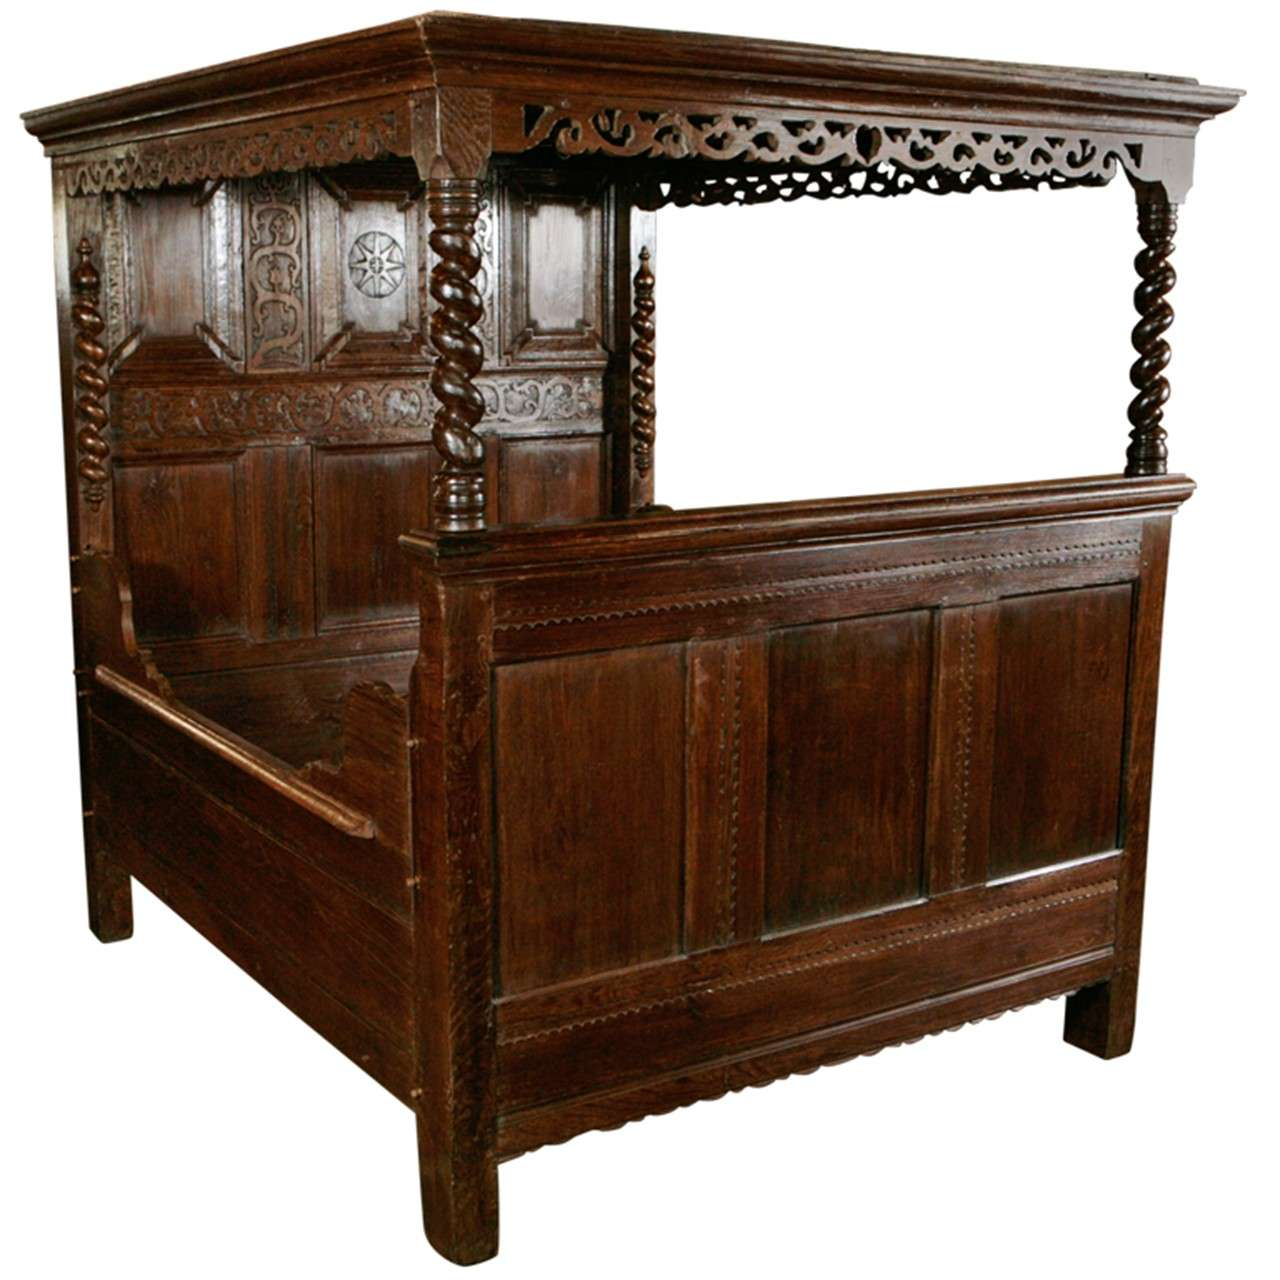 antique beds for sale Antique Carved Oak Tester Bed For Sale at 1stdibs antique beds for sale